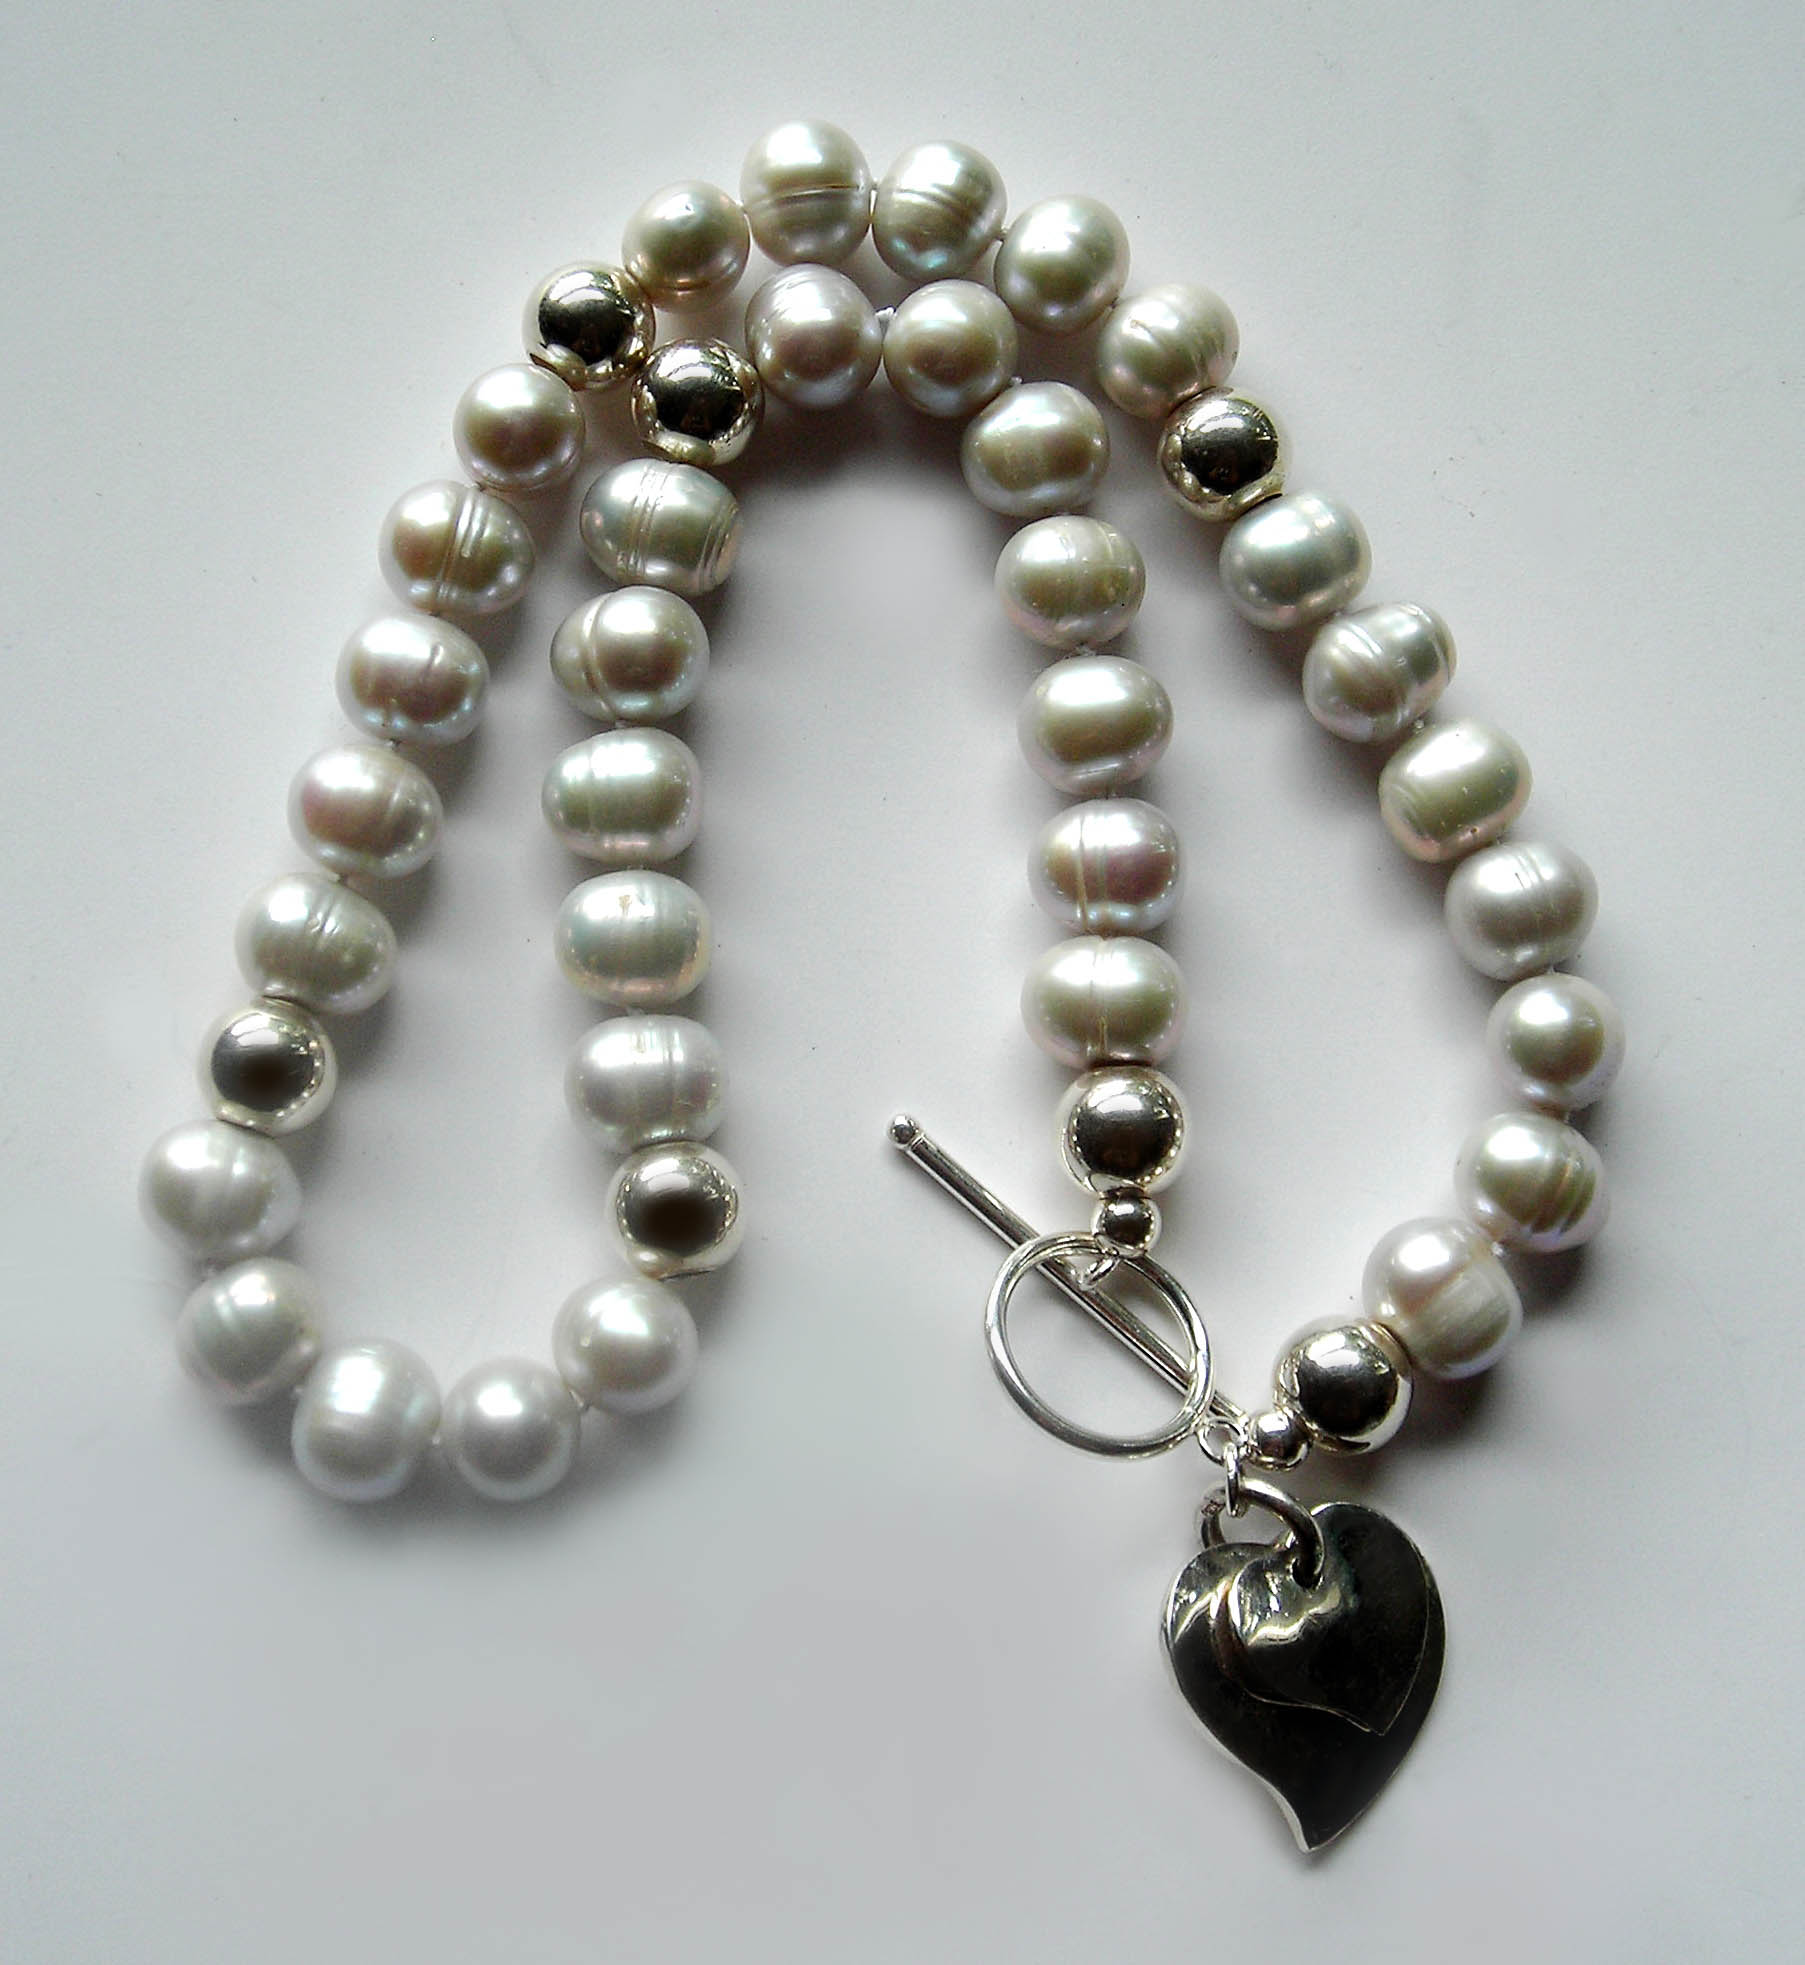 The Illumina Gray Pearl Necklace